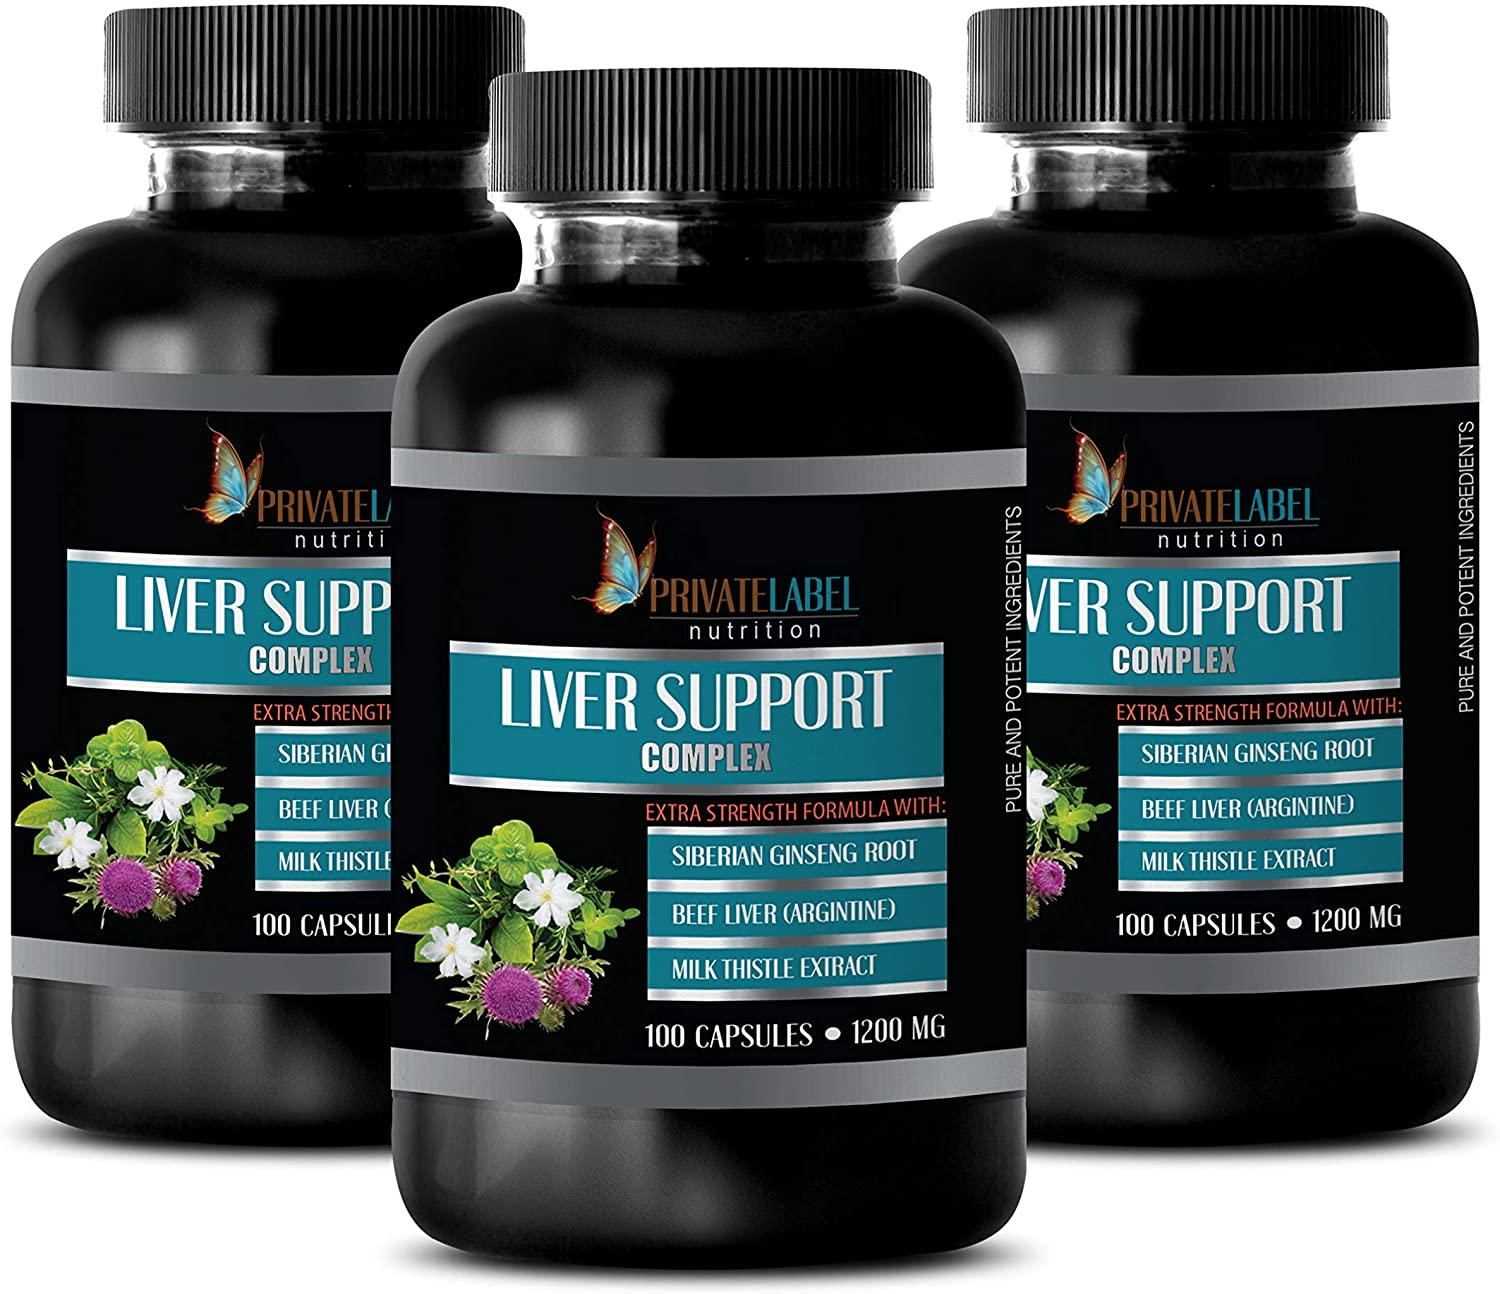 Liver Support Supplement for Men - Liver Support Complex 1200 MG - Extra Strength Formula - eleuthero Root Capsules - 3 Bottles 300 Capsules